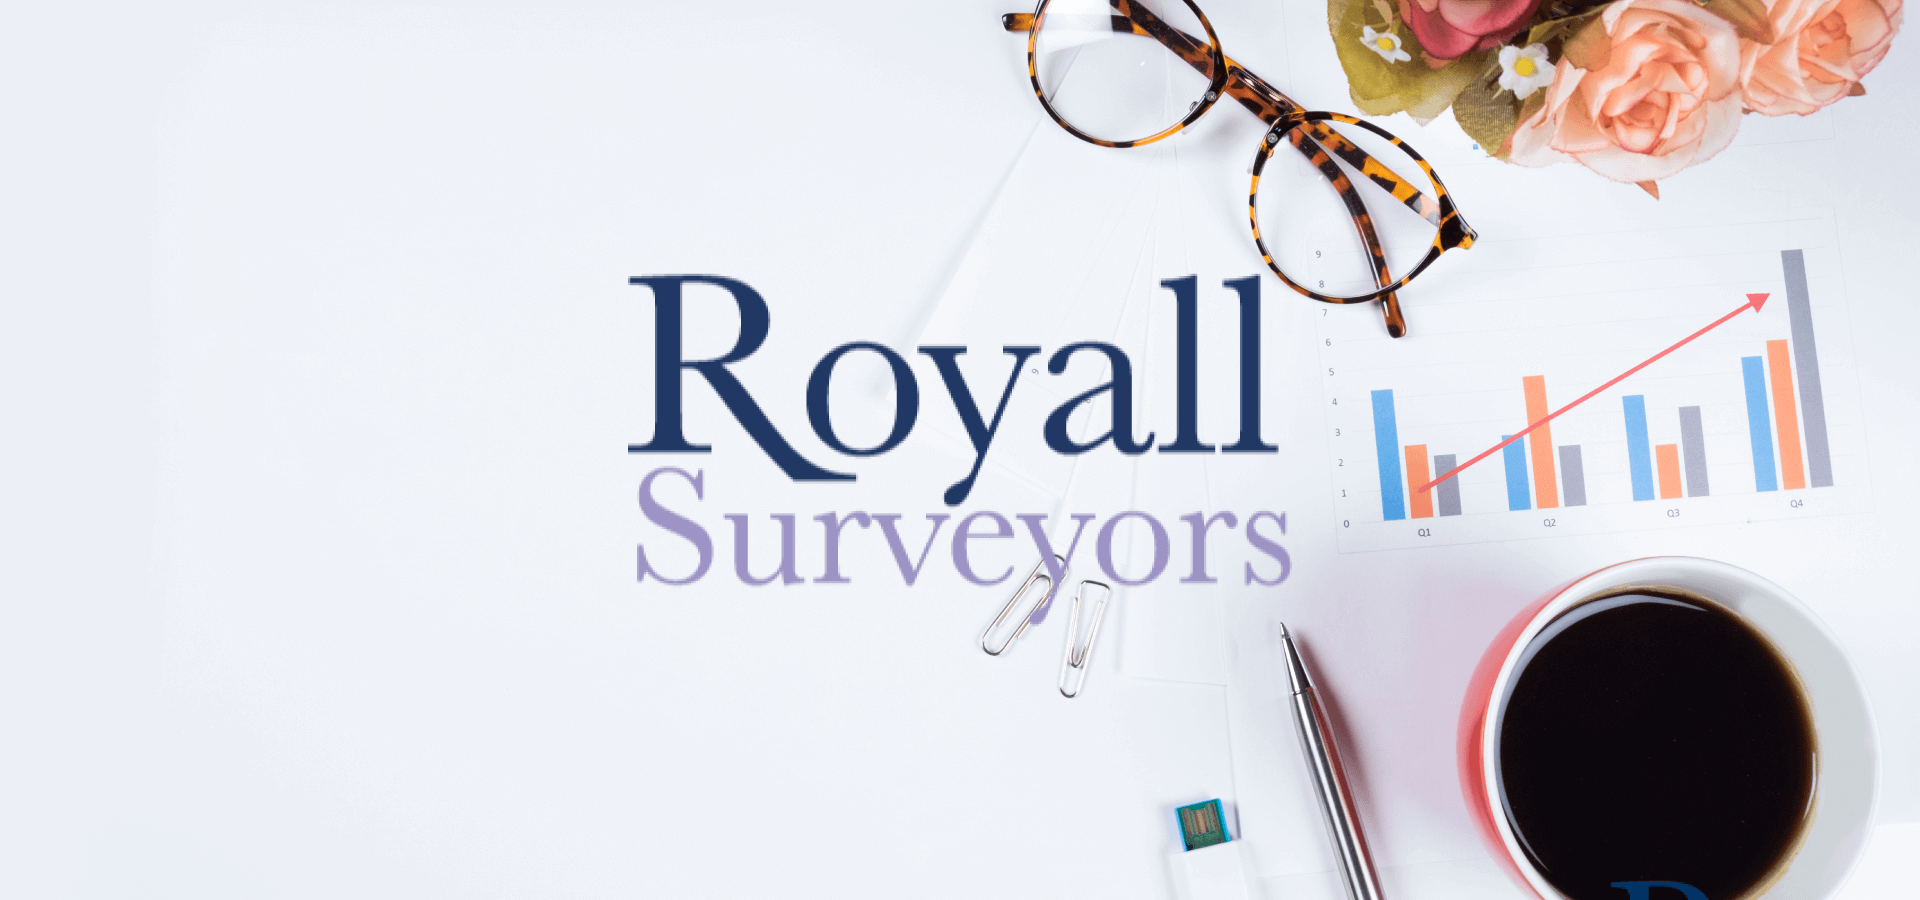 Royall Surveyors